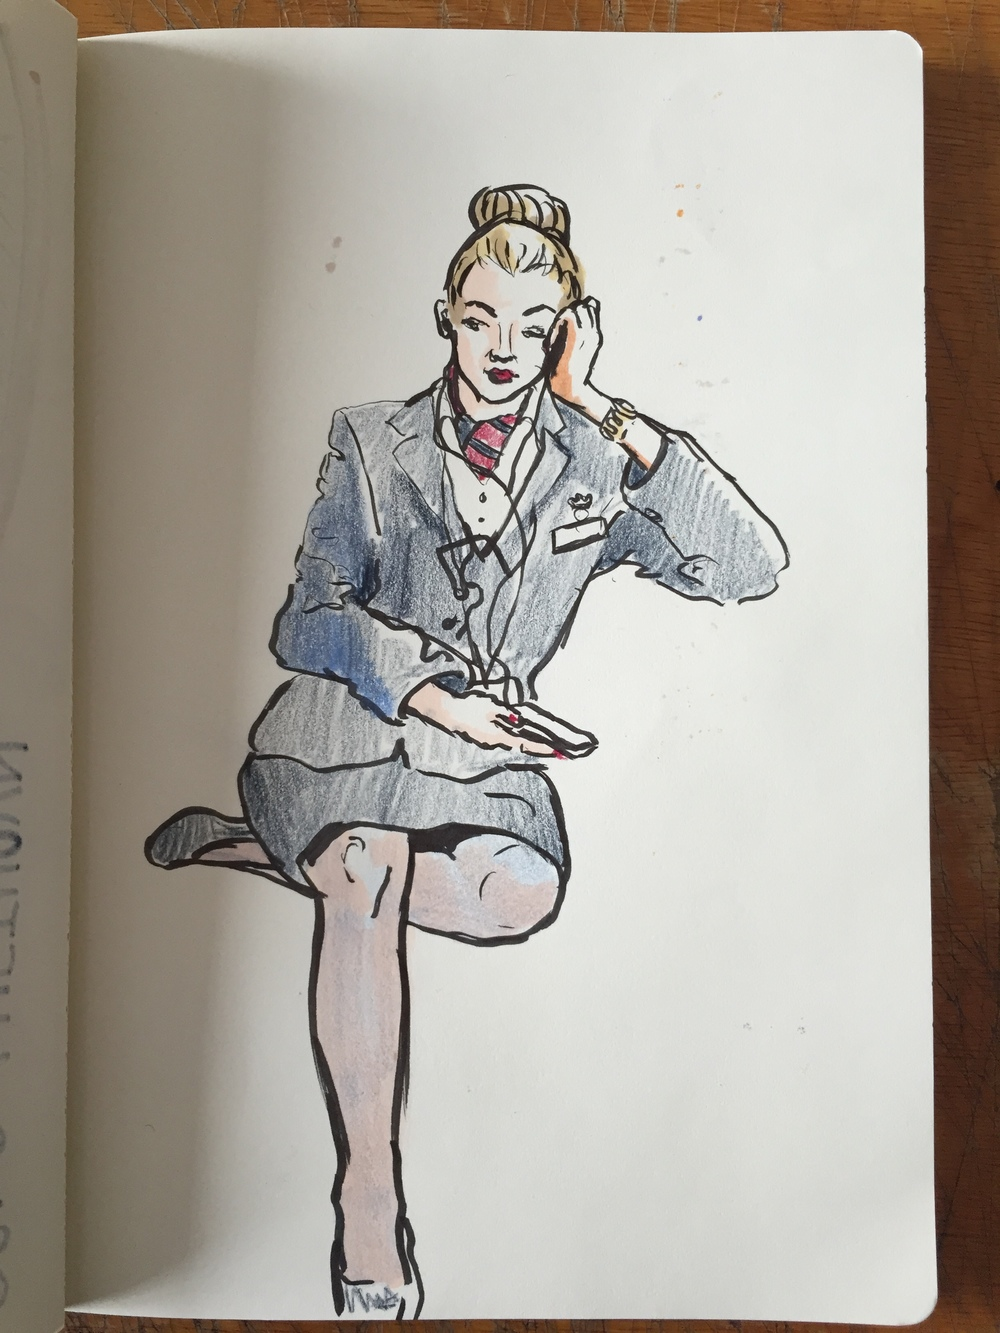 Air Hostess after a flight - London Underground